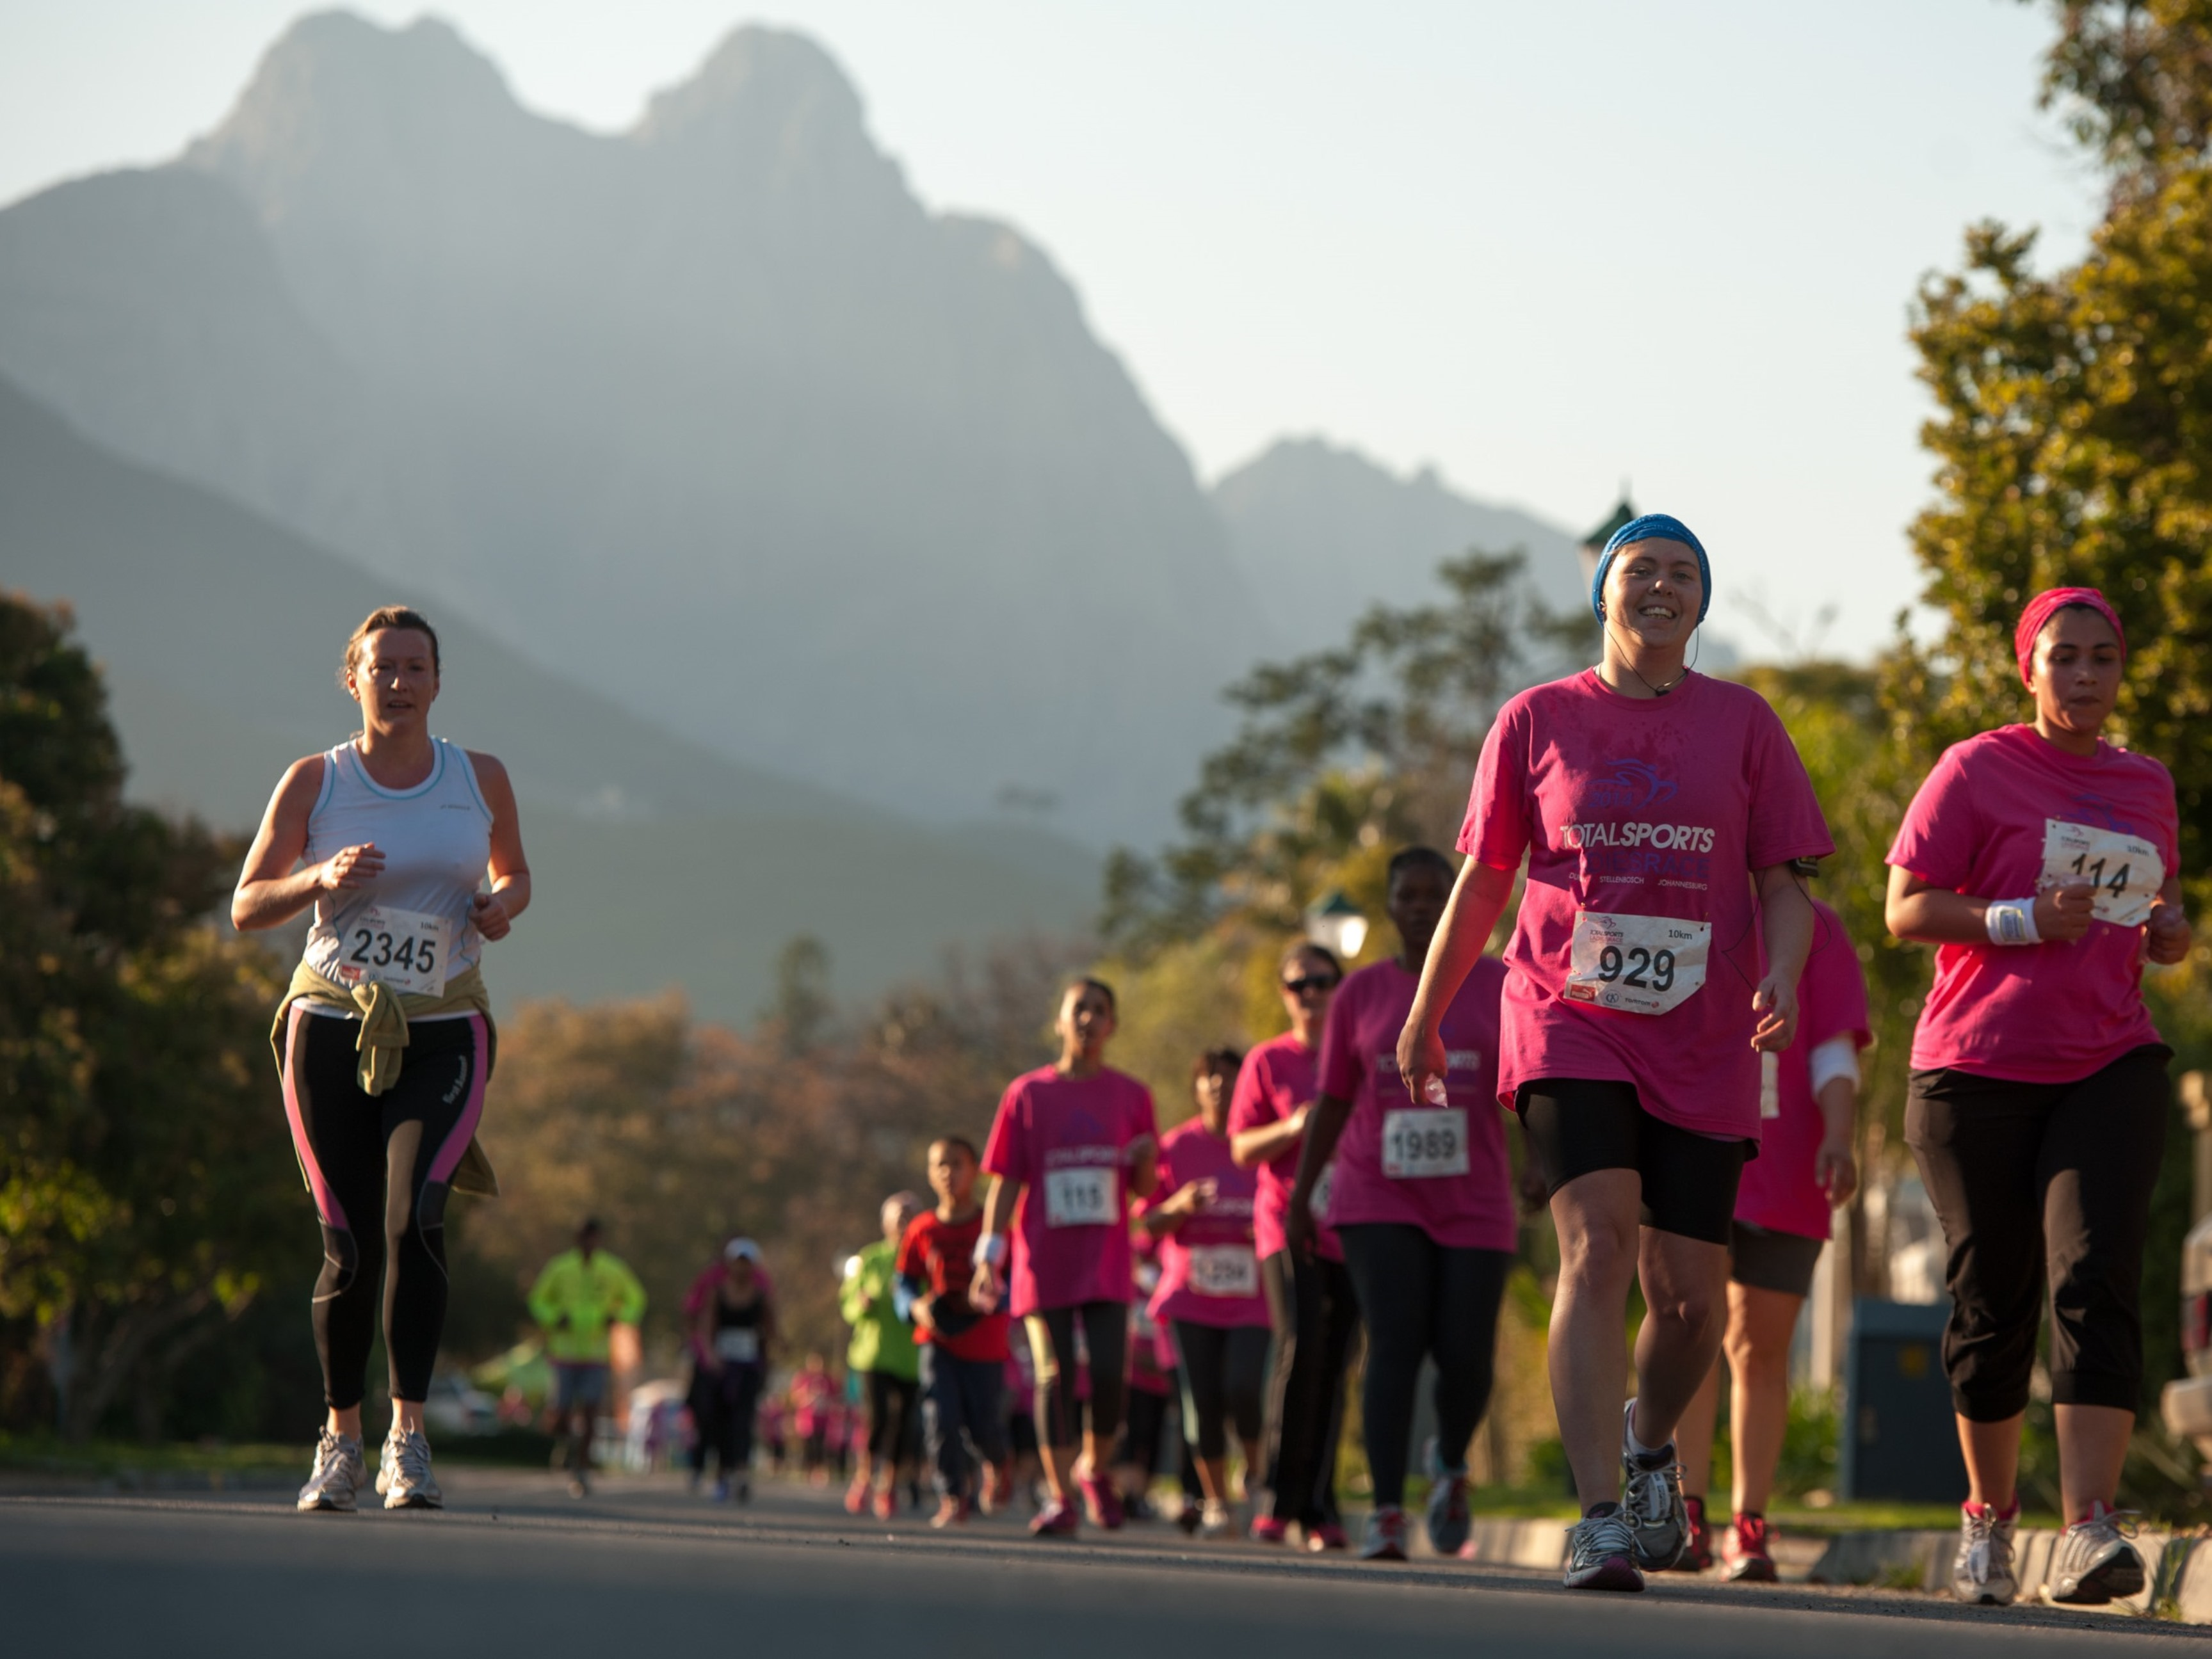 Runners and Walkers in action at the 2014 Totalsports Women's Race in Stellenbosch.  PHOTO CREDIT:  Cherie Vale / NEWSPORT MEDIA